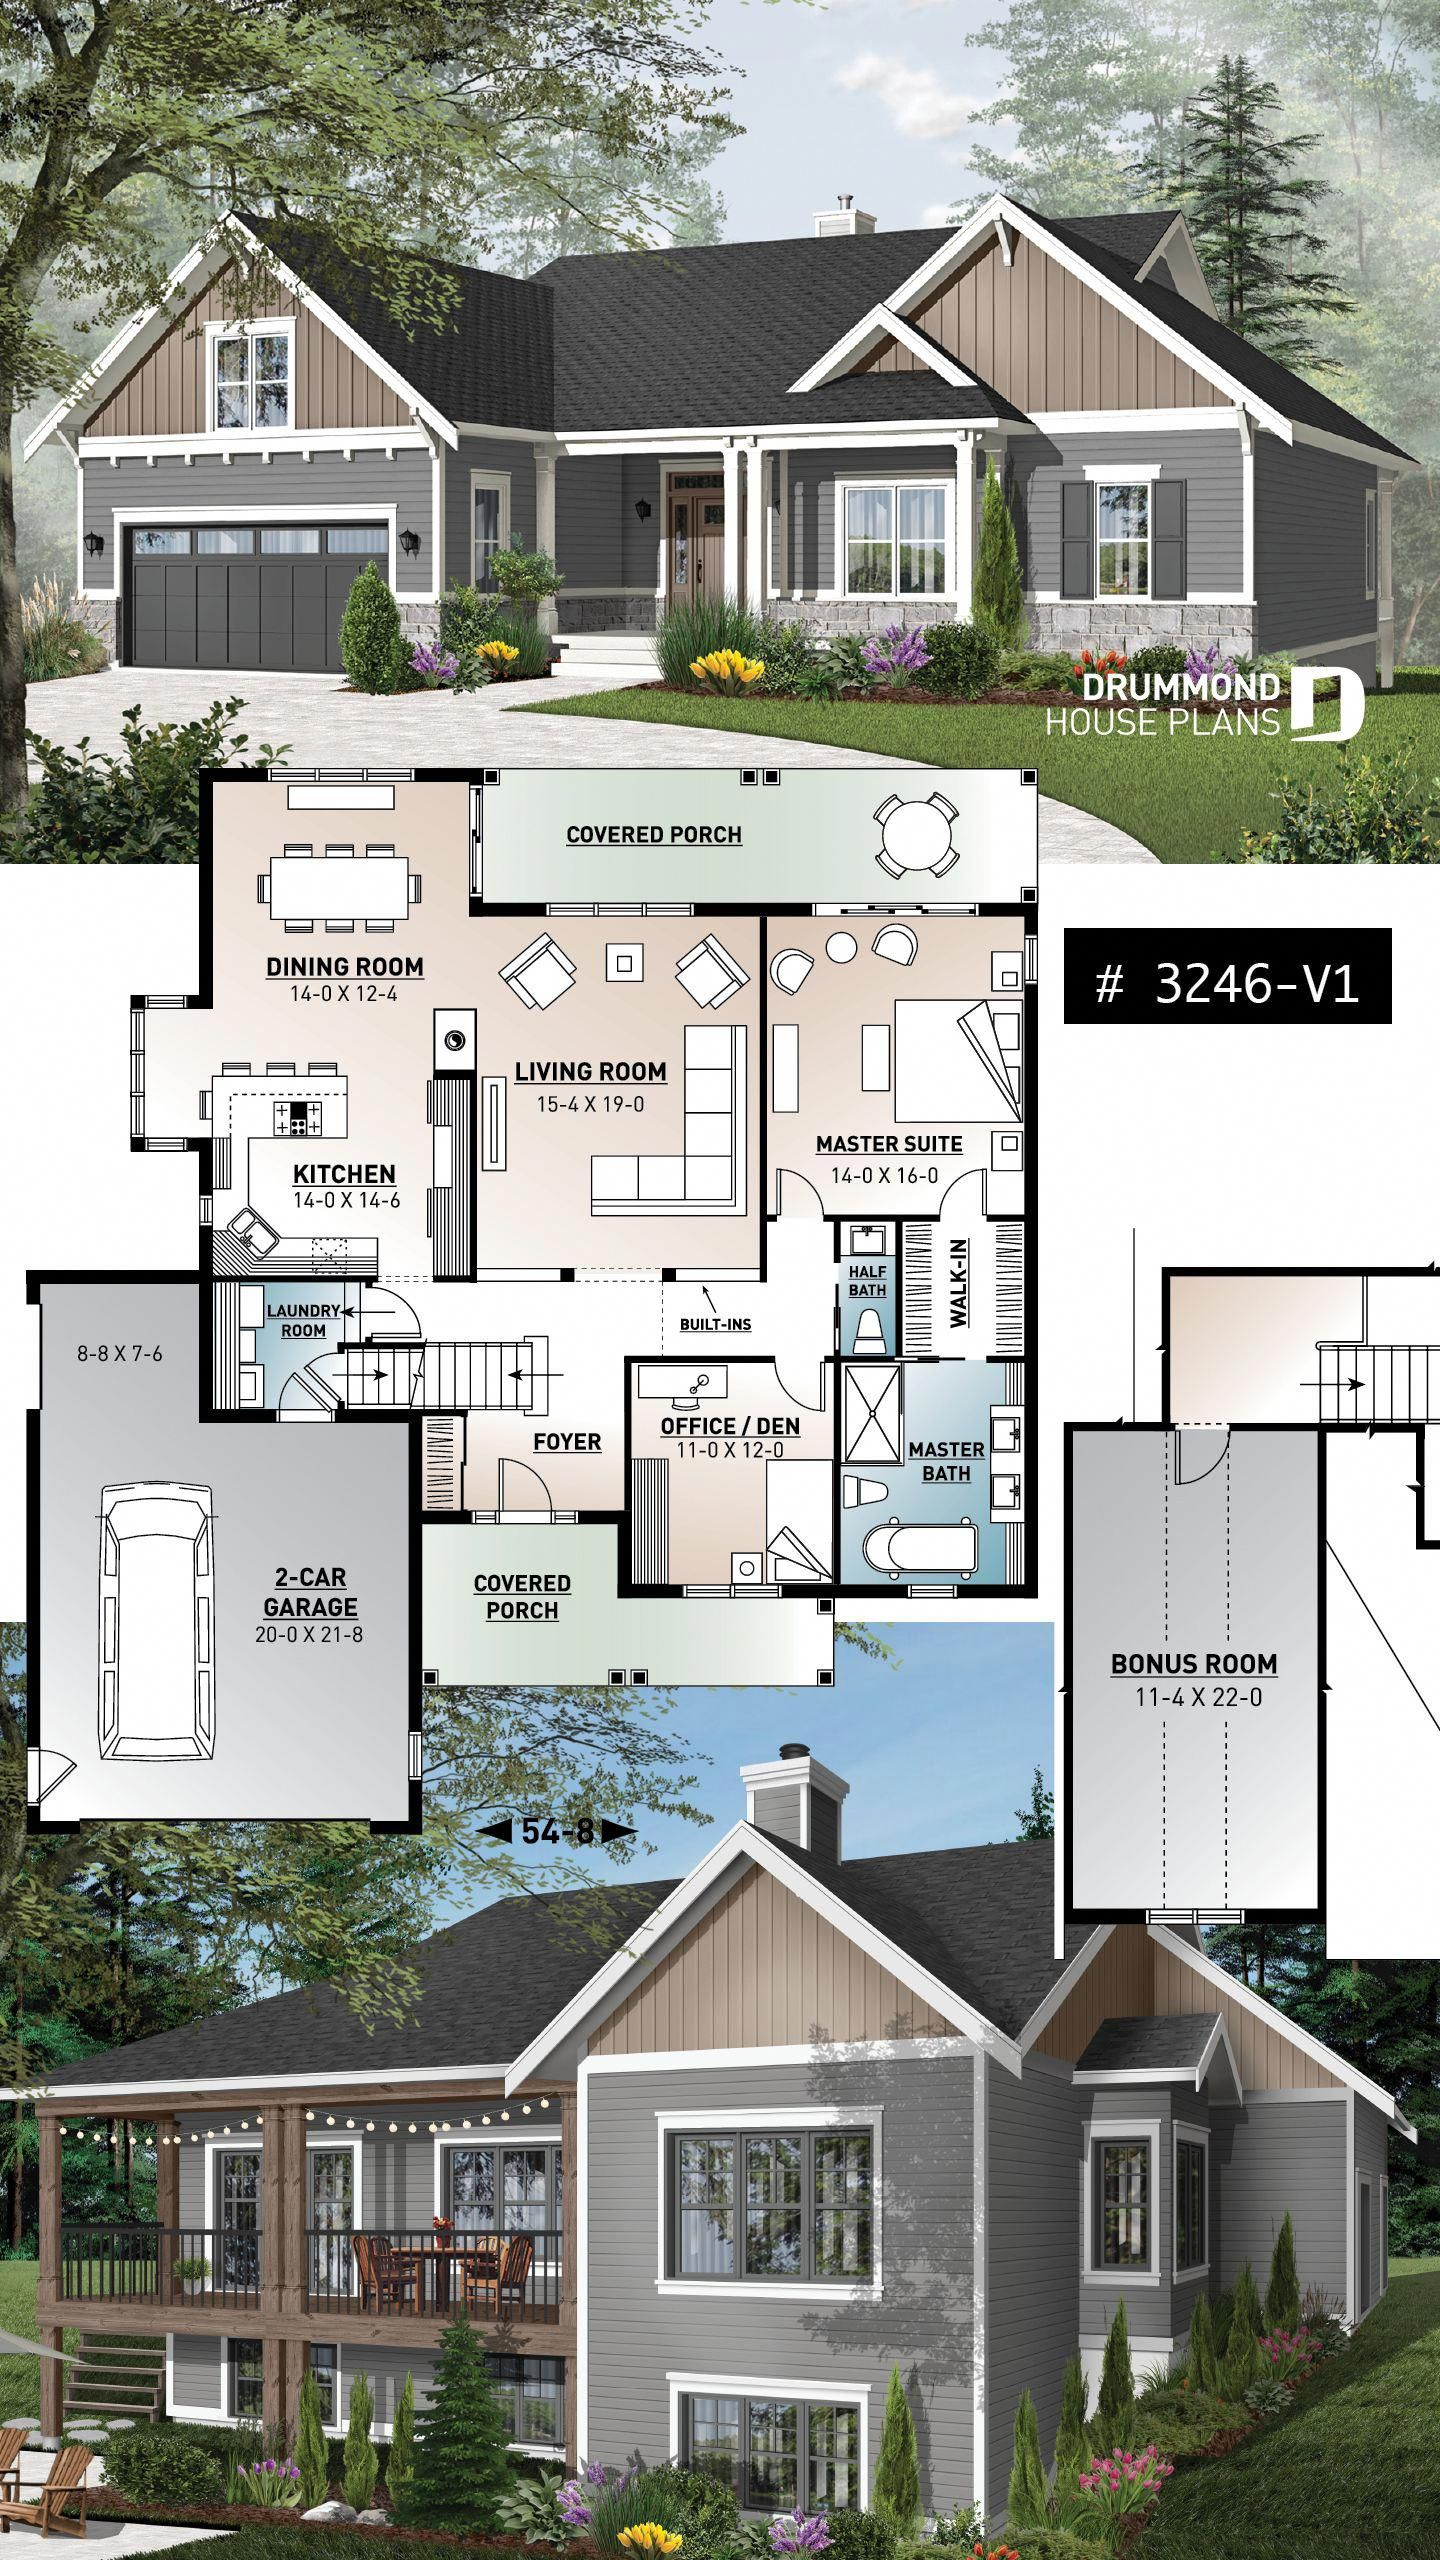 Inspirational Concepts That We Are Fond Of Basementapartment In 2020 Bungalow House Plans Craftsman House Plans House Plans Farmhouse